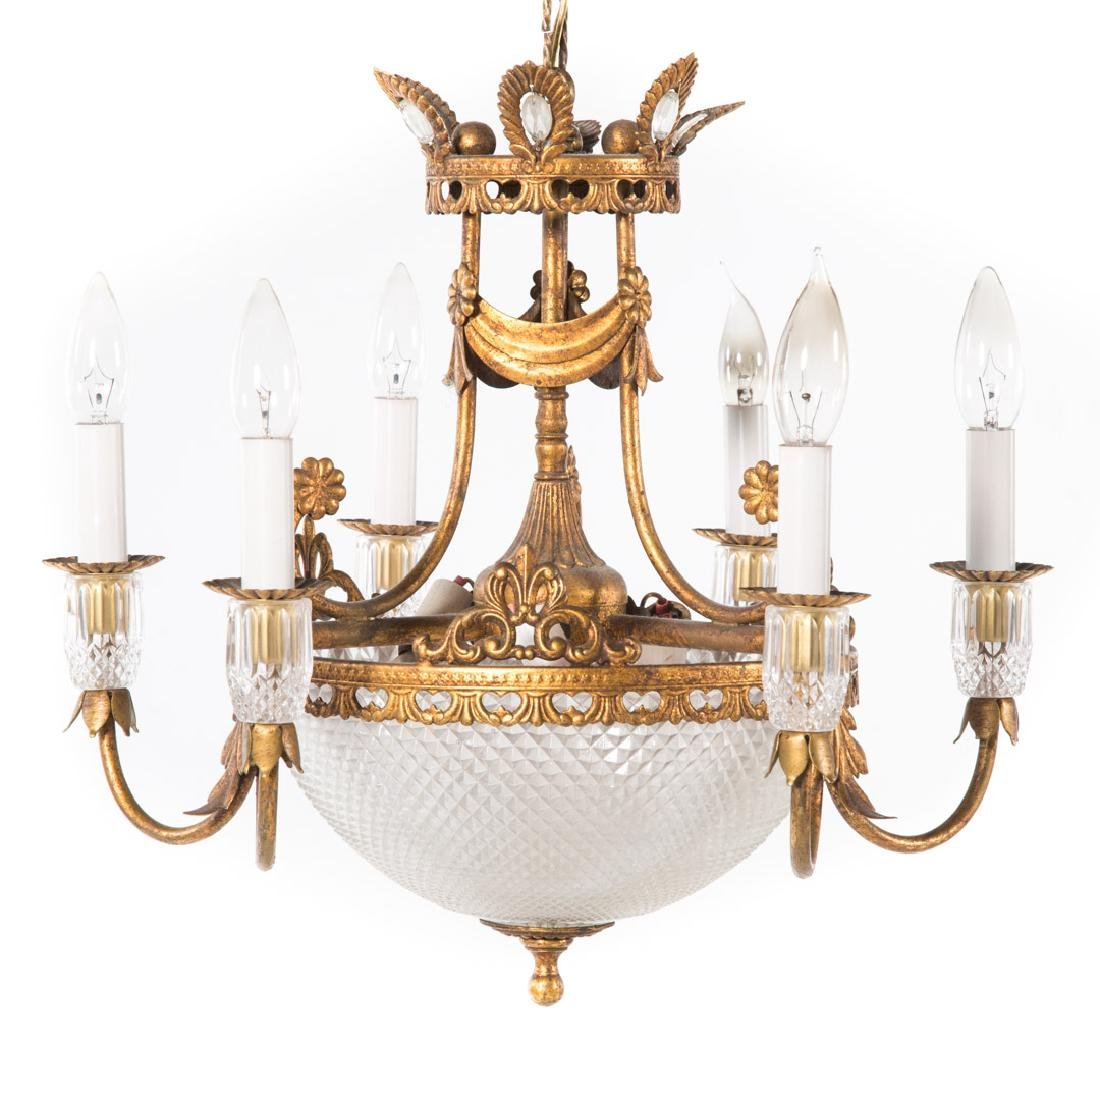 Empire style gilt metal six light chandelier